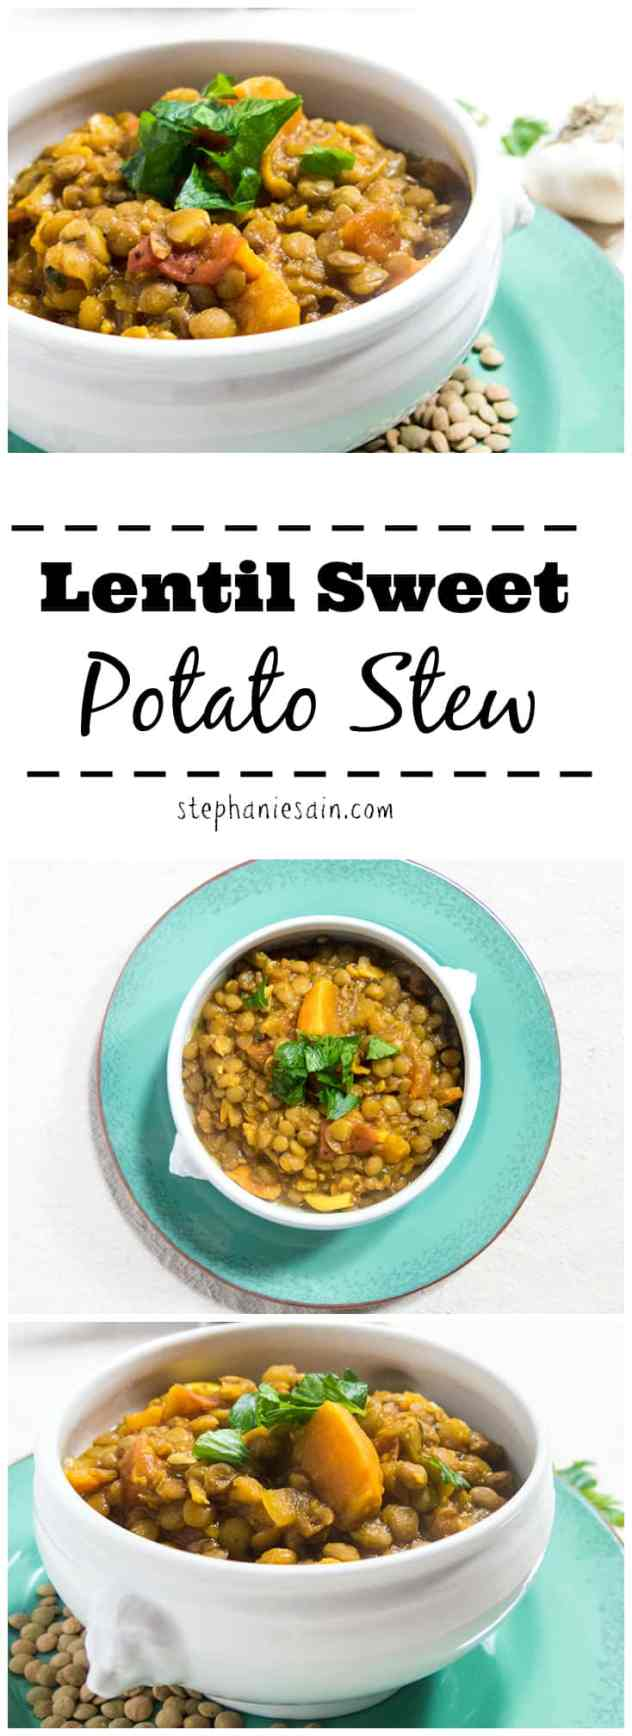 Lentil Sweet Potato Stew is a healthy, easy to prepare stew. Great vegetarian and gluten free stew that can be served alone or with muffins or a salad.